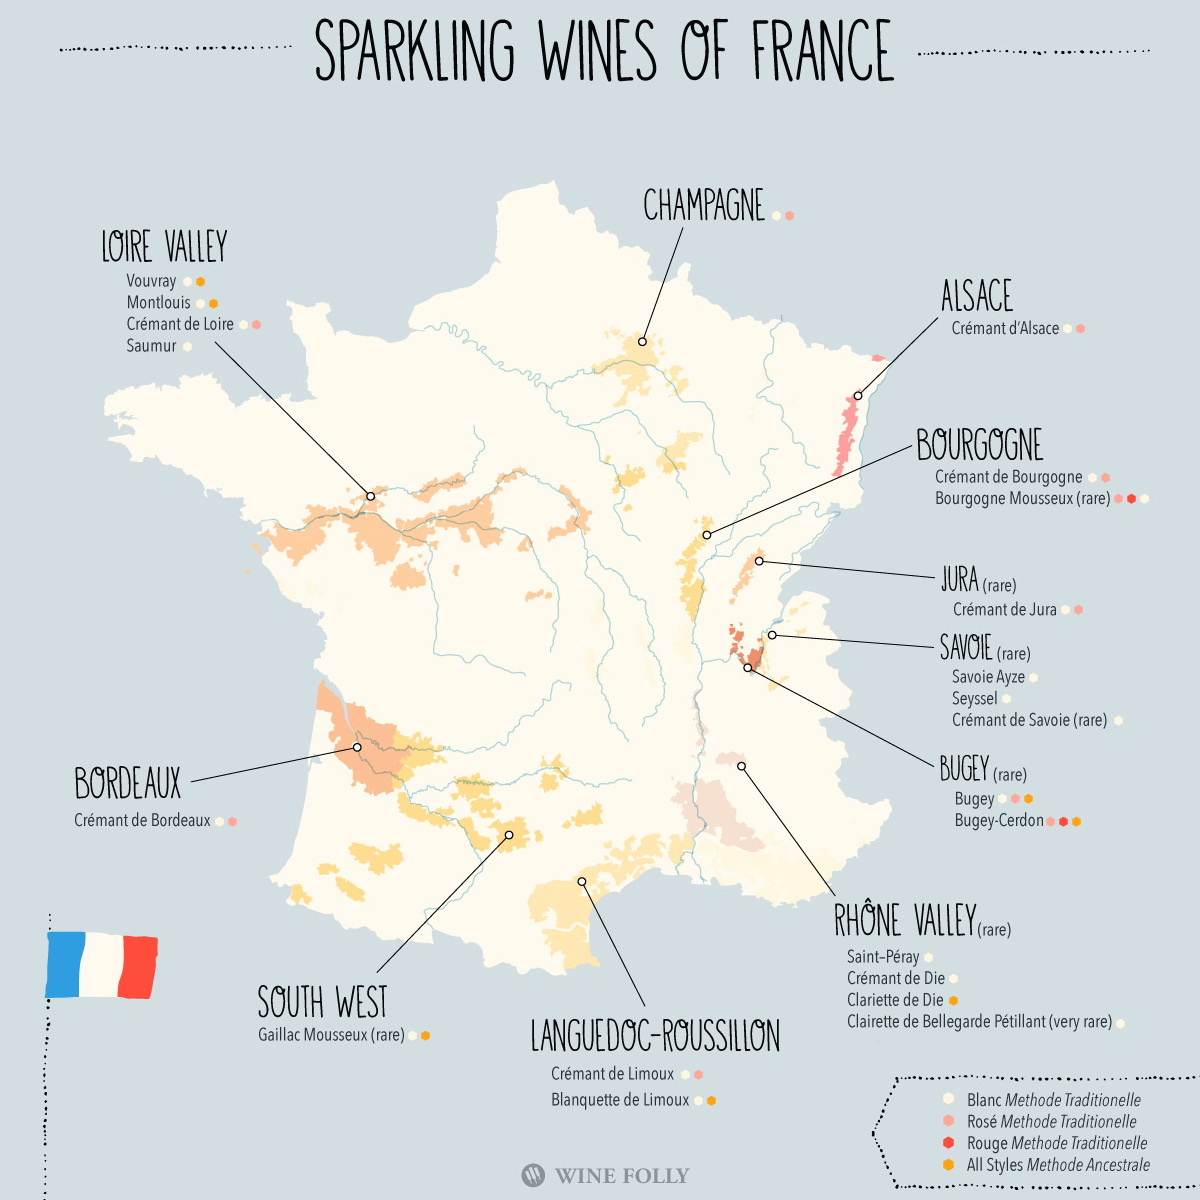 Sparkling wines of France